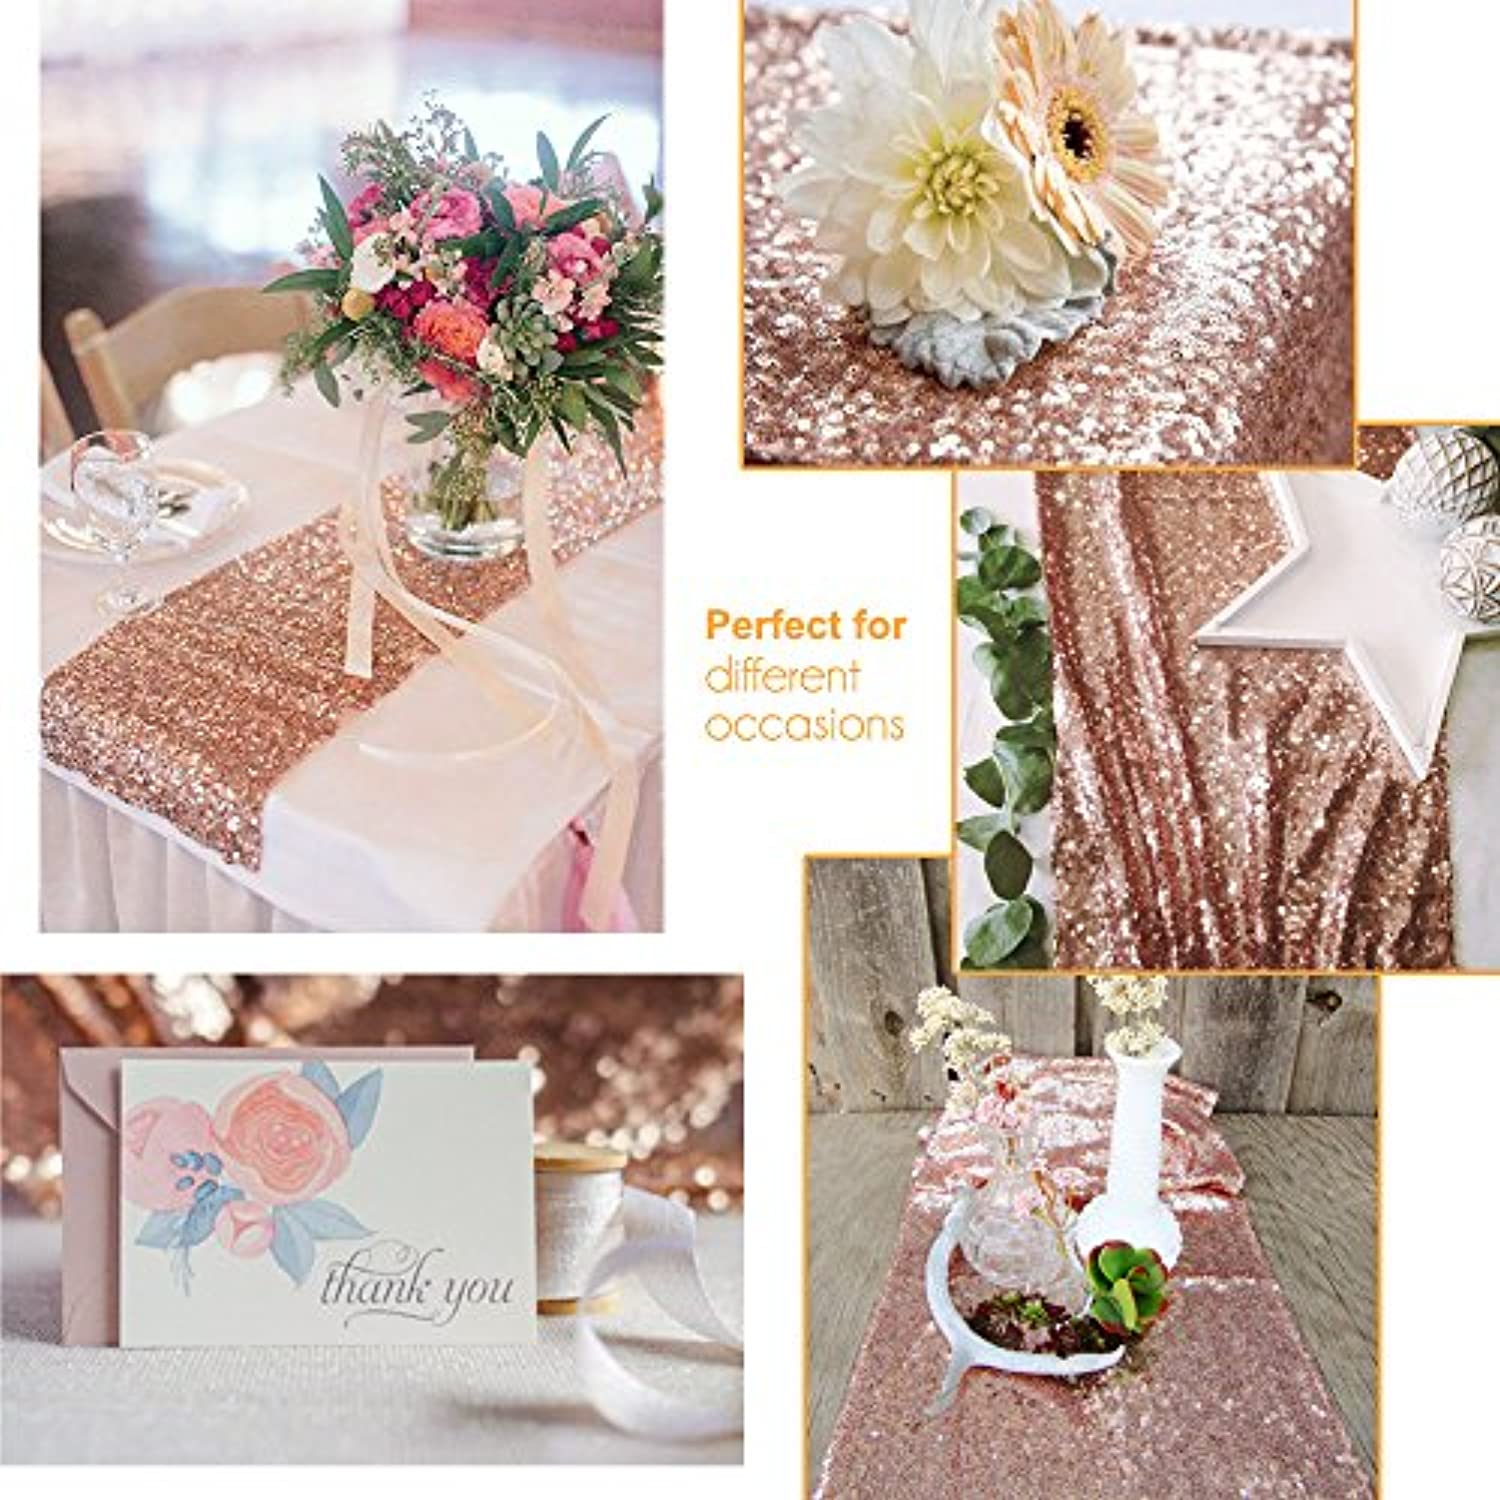 Classier: Buy Acrabros Sequin Table Runners ROSE GOLD- 12 X 72 Inch Glitter ROSE GOLD Table Runner-ROSE GOLD Party Supplies Fabric Decorations For Holiday Christmas Gift Wedding Birthday